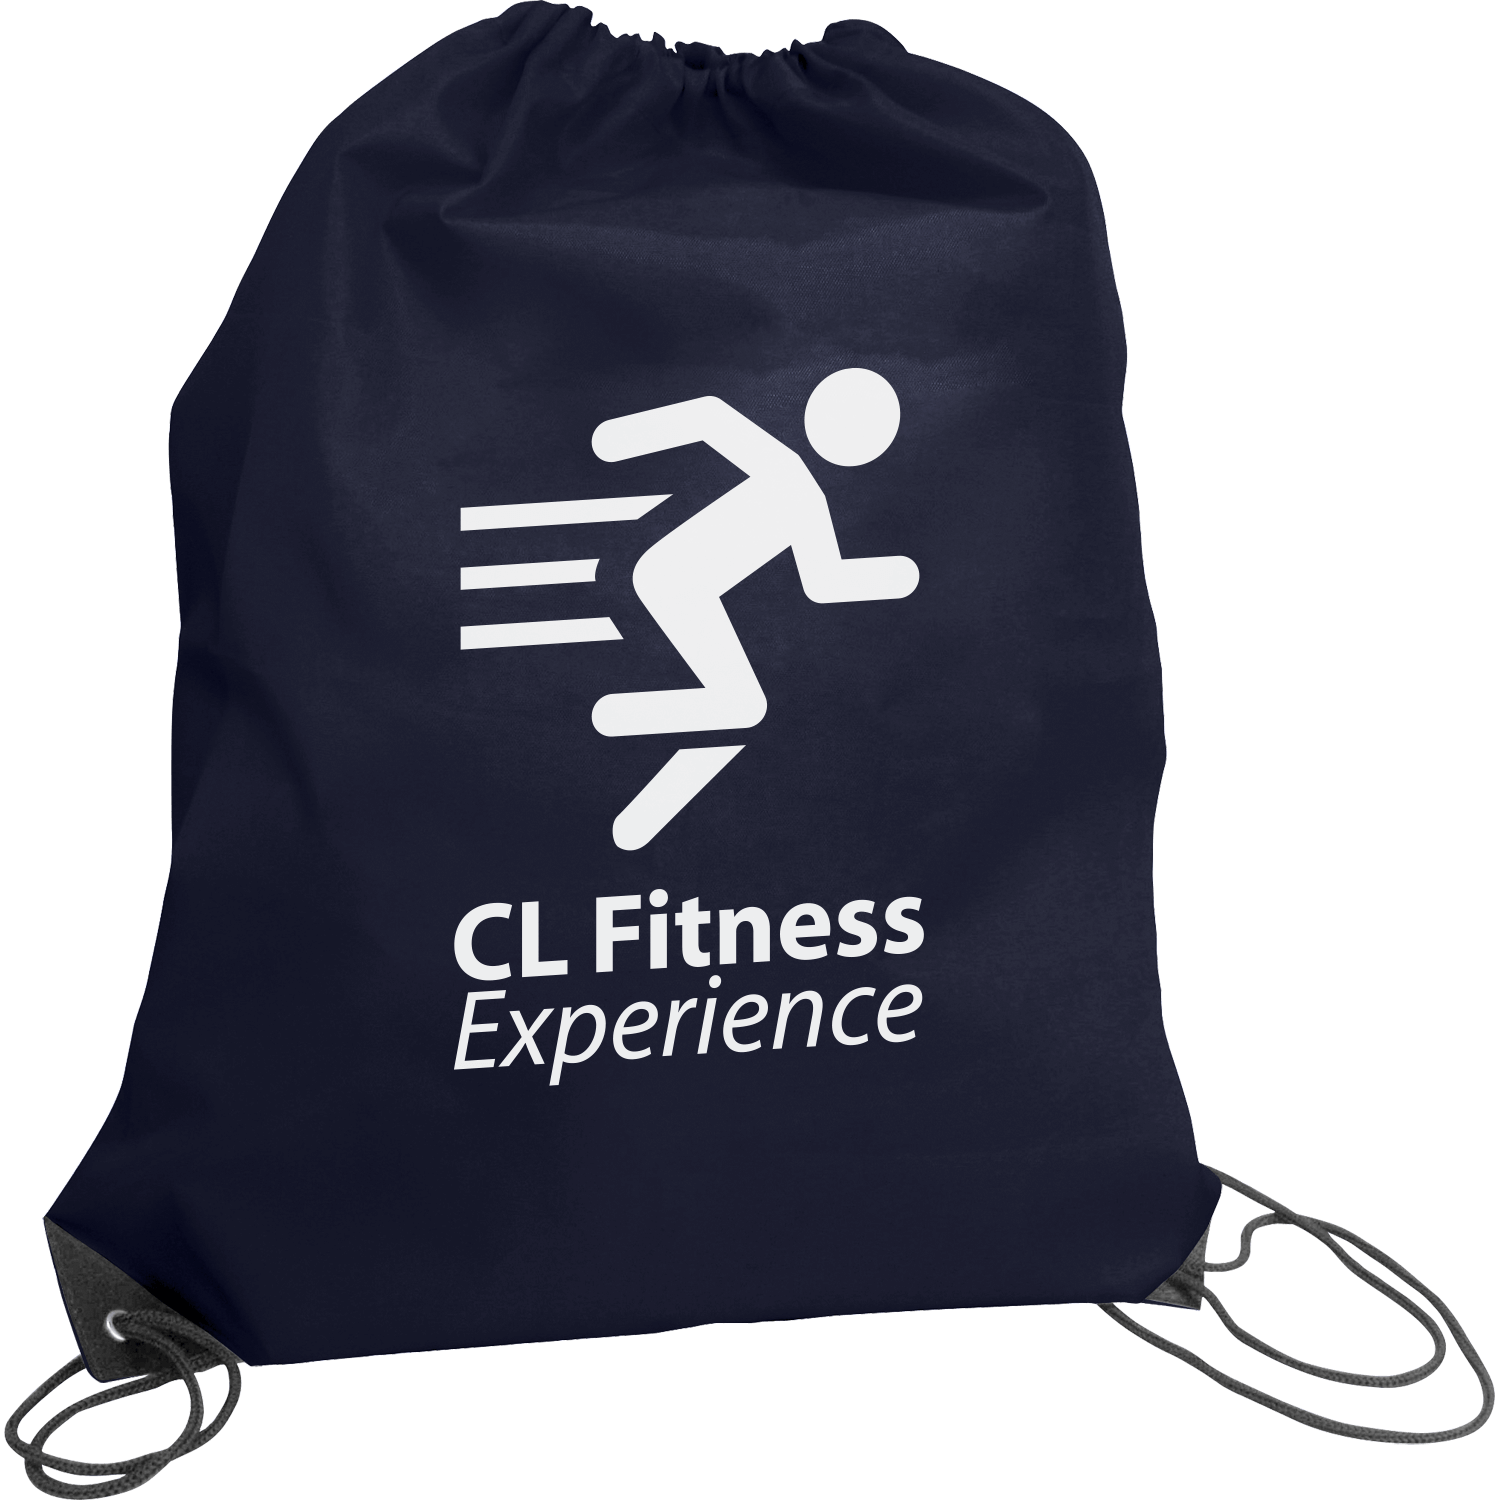 2 Day Classic Drawstring Promotional Bags